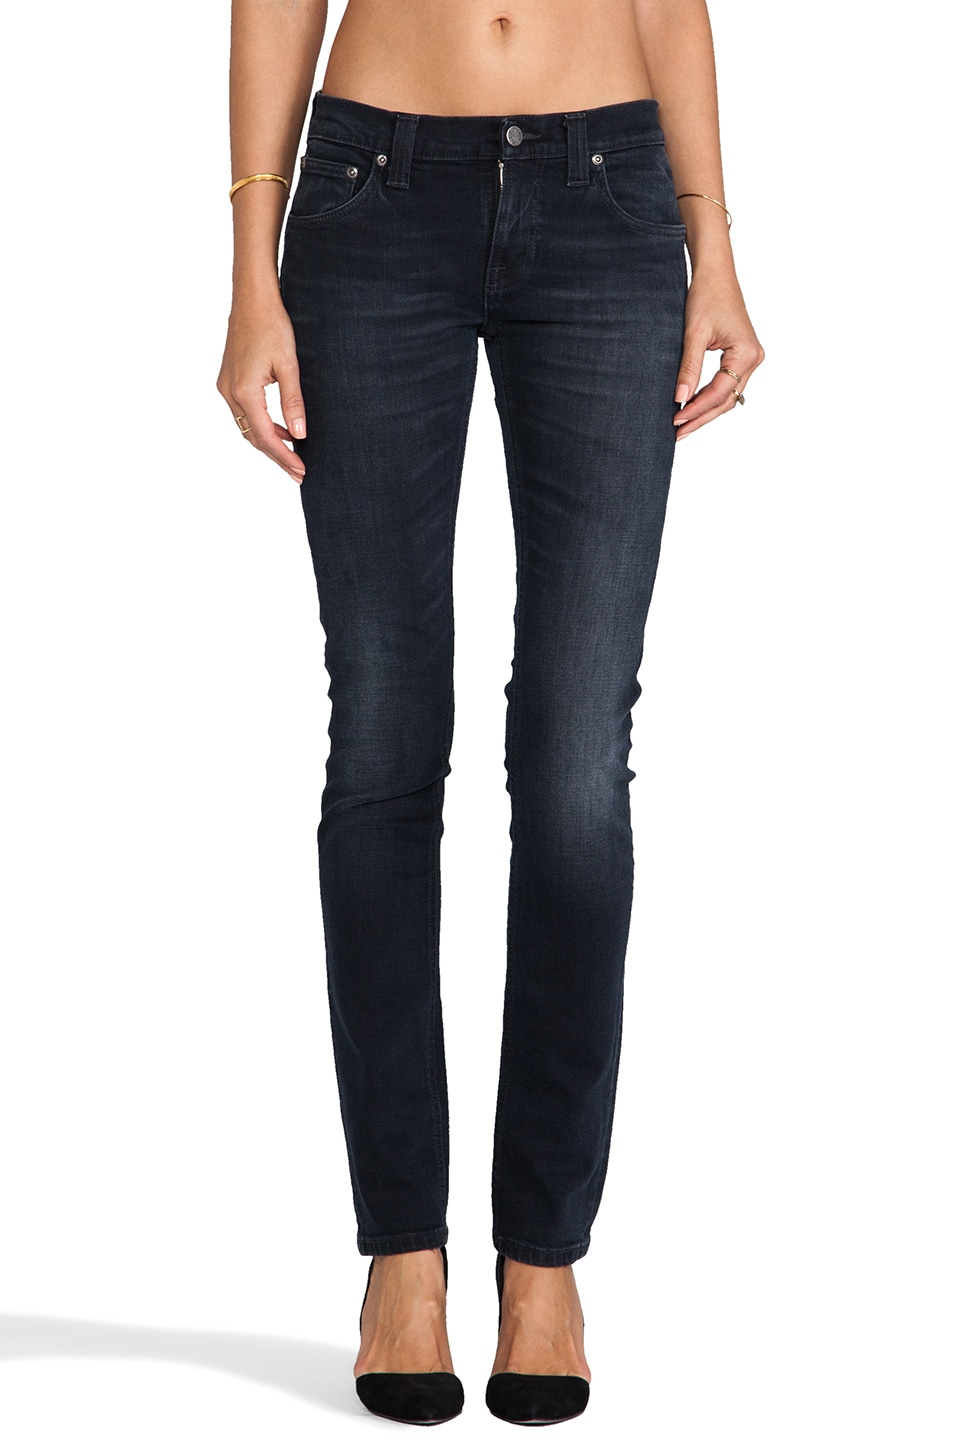 Nudie Jeans Tight Long John in Organic Black and Grey